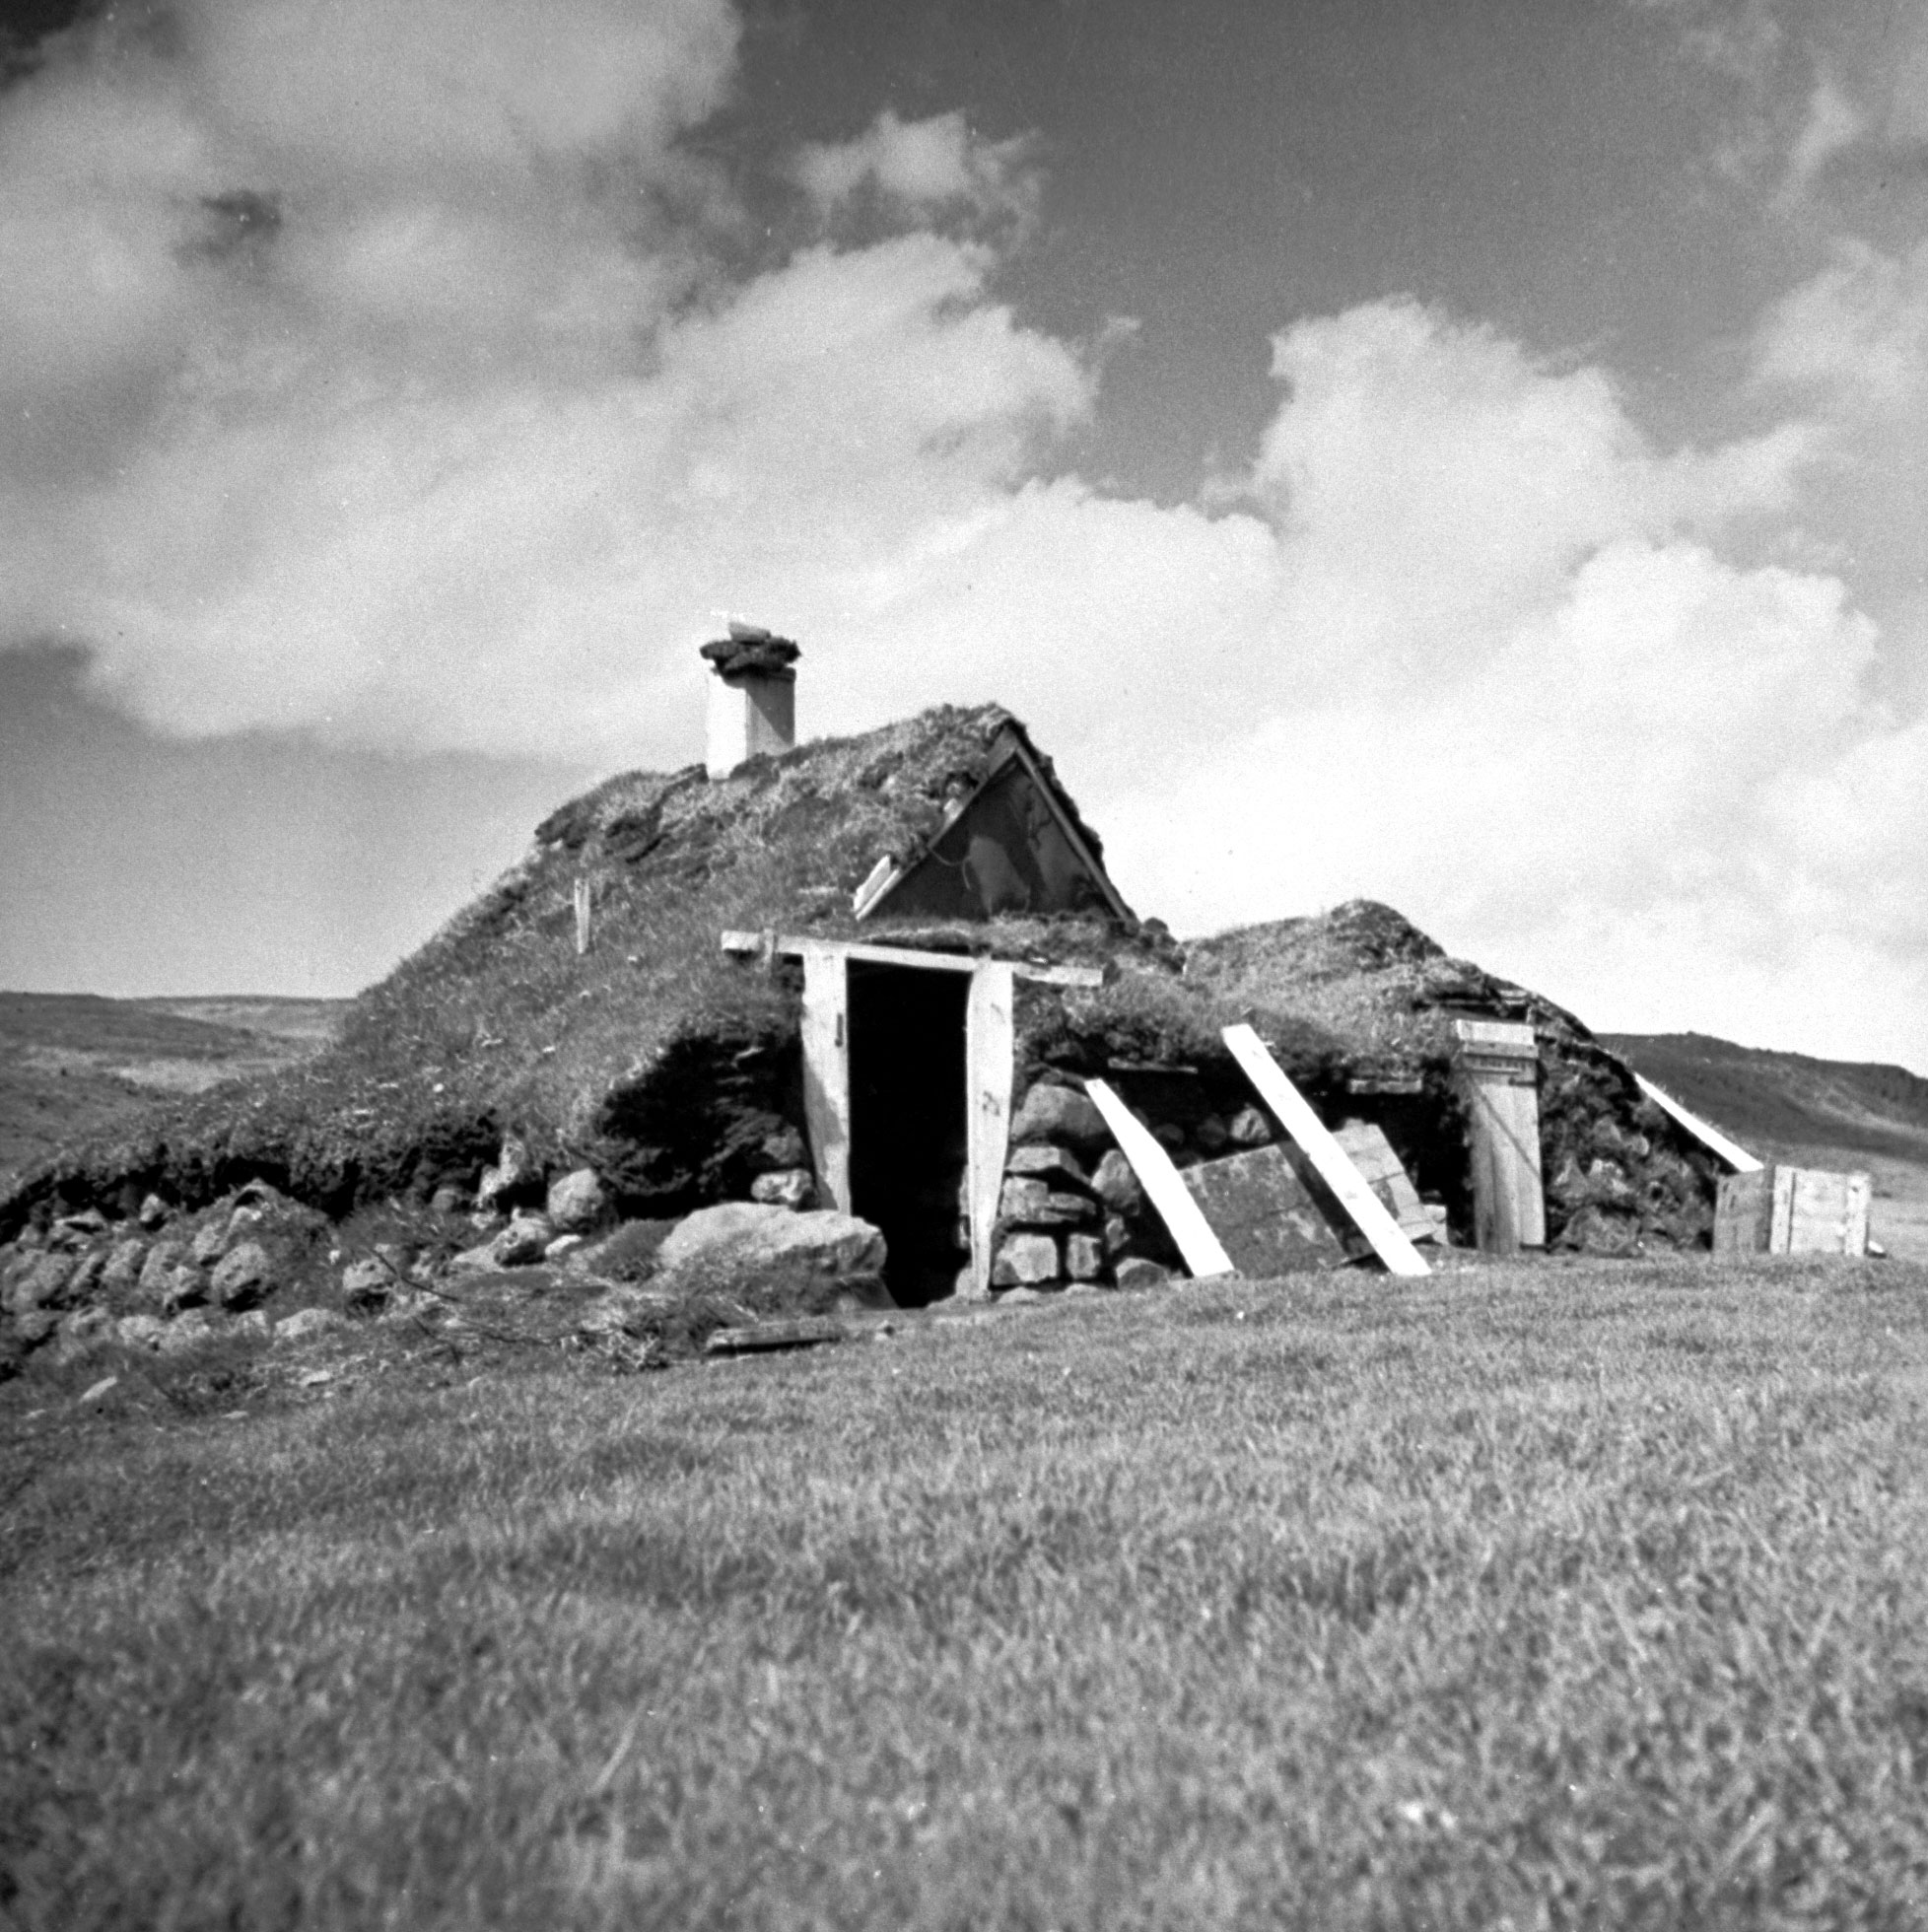 """<b>Caption from print:</b> """"Traveling is not always easy and comfortable in Iceland. When it has been raining for days, tents and night things are all drenched, you are very glad to find shelter in an old sheep-fold like this."""""""